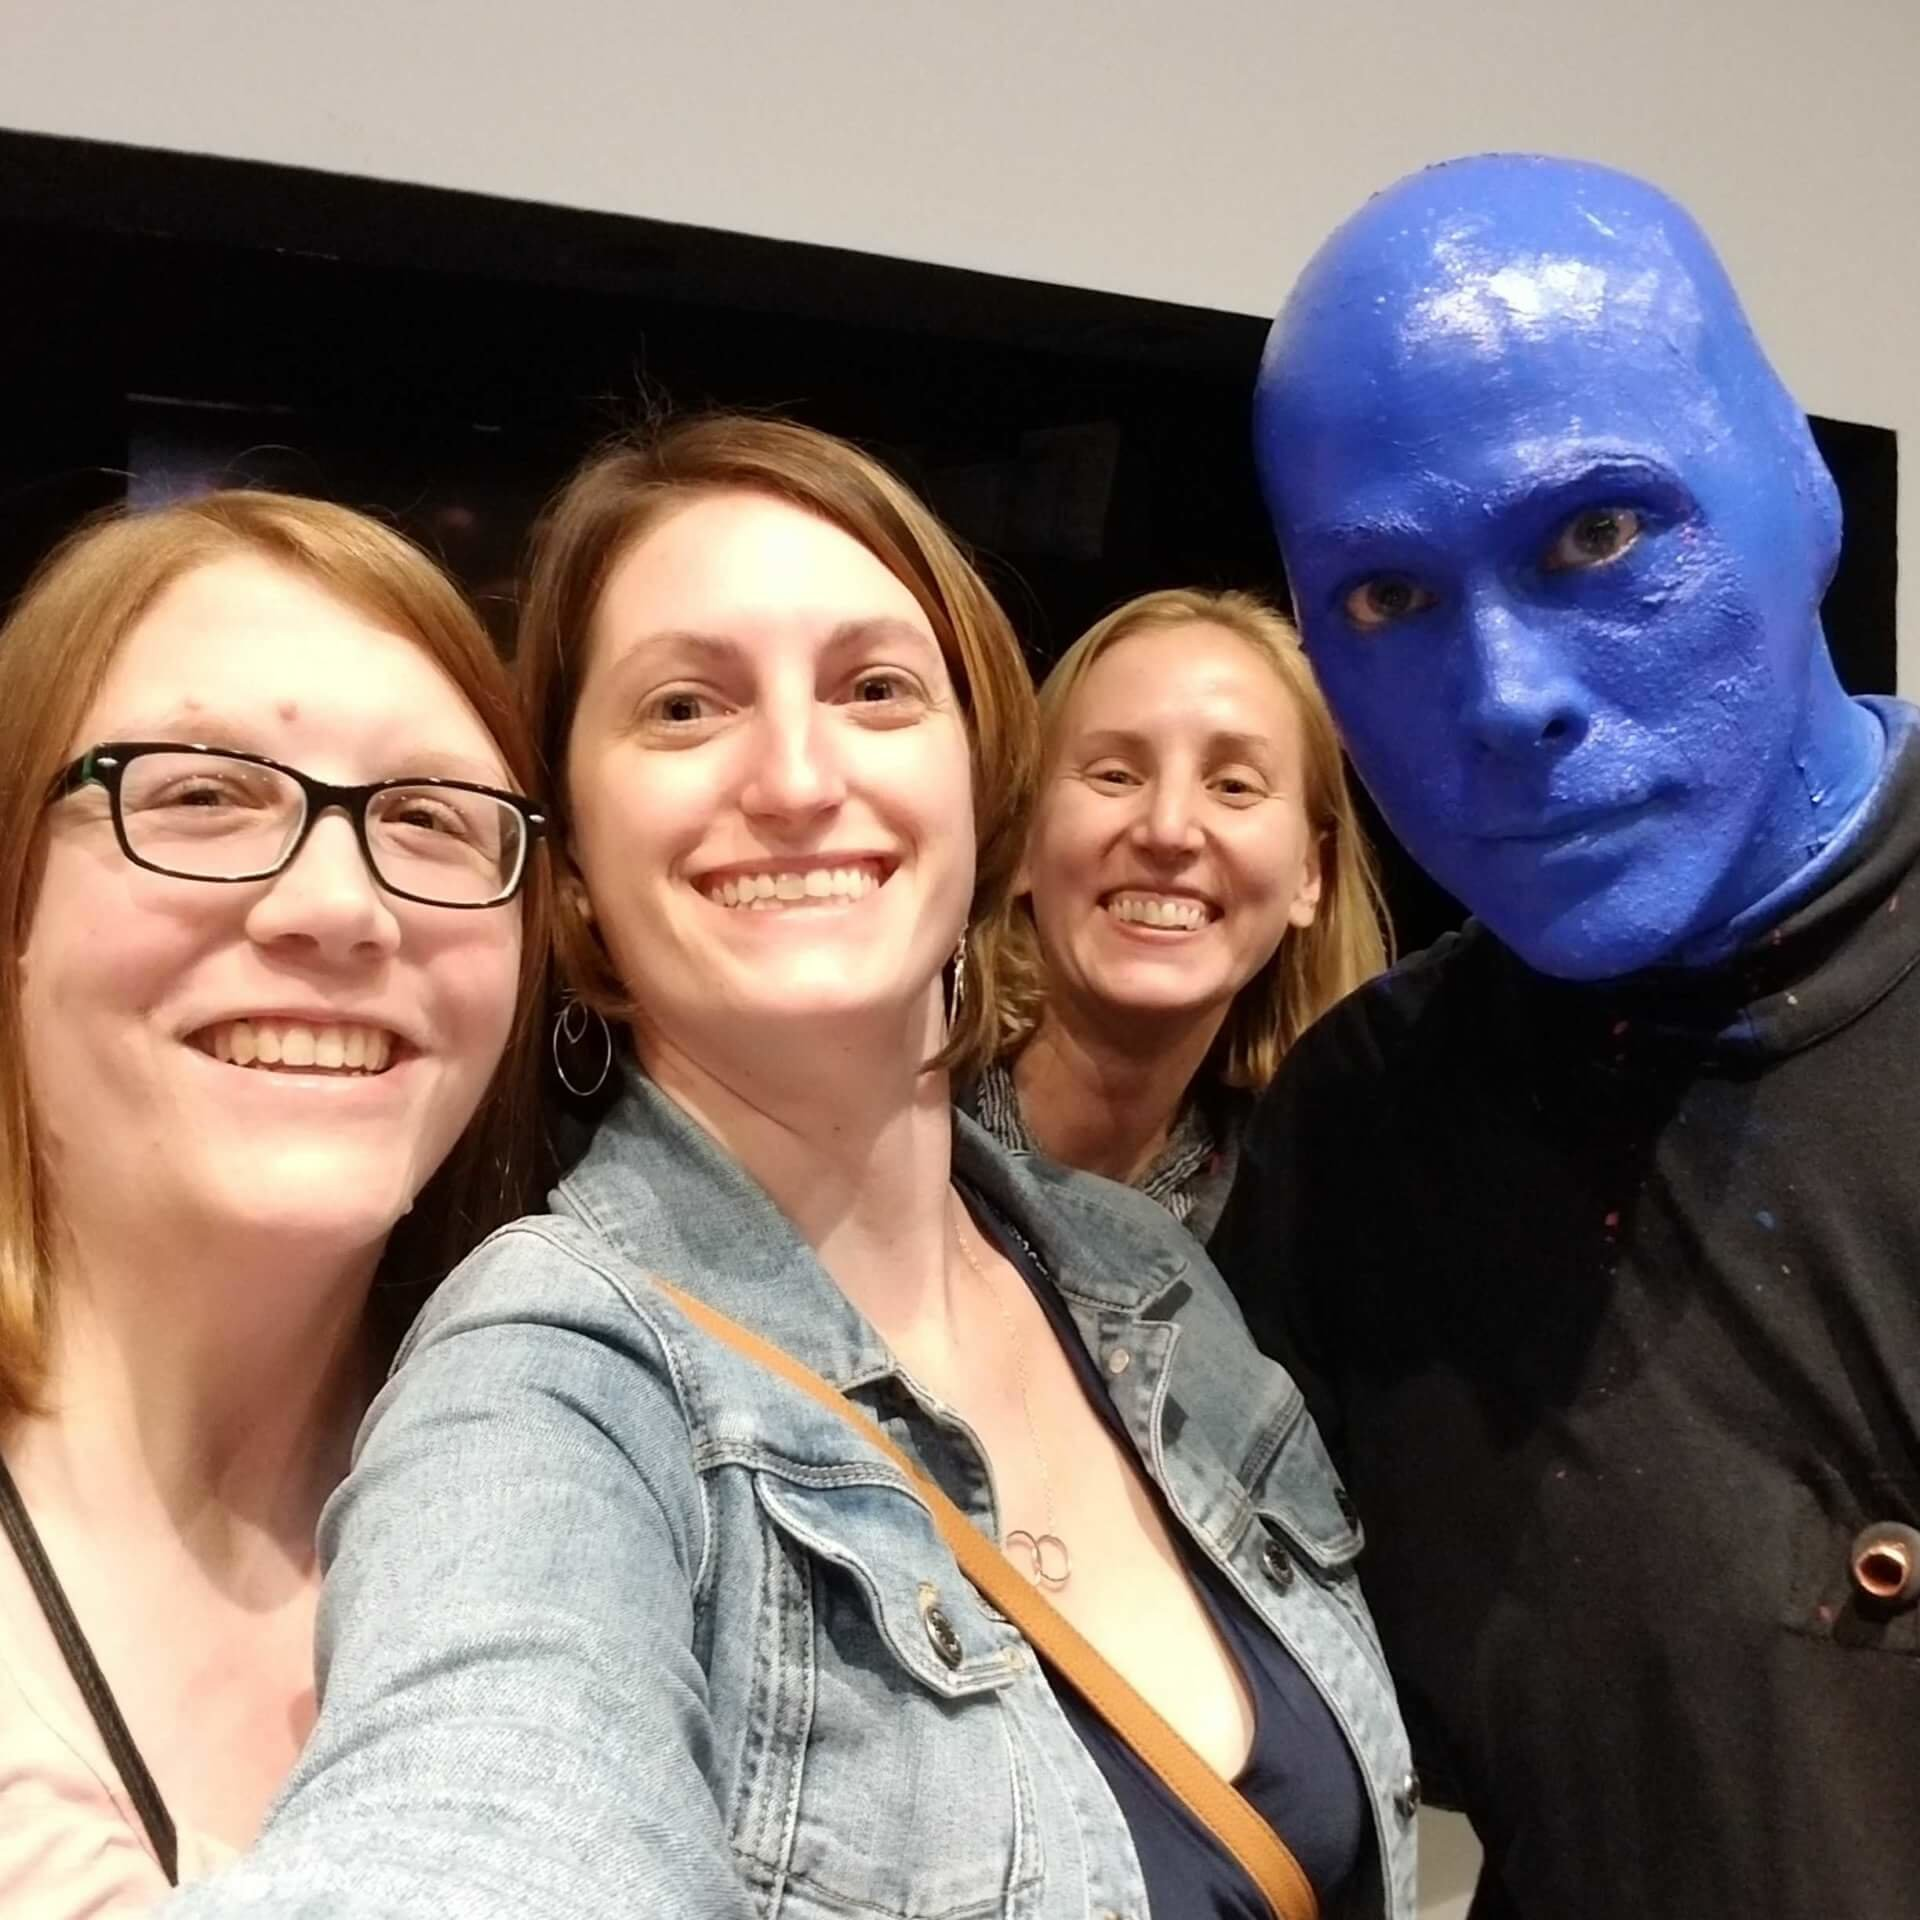 Emily Miels and Andi Thiel after a Blue Man Group performance in Chicago, IL